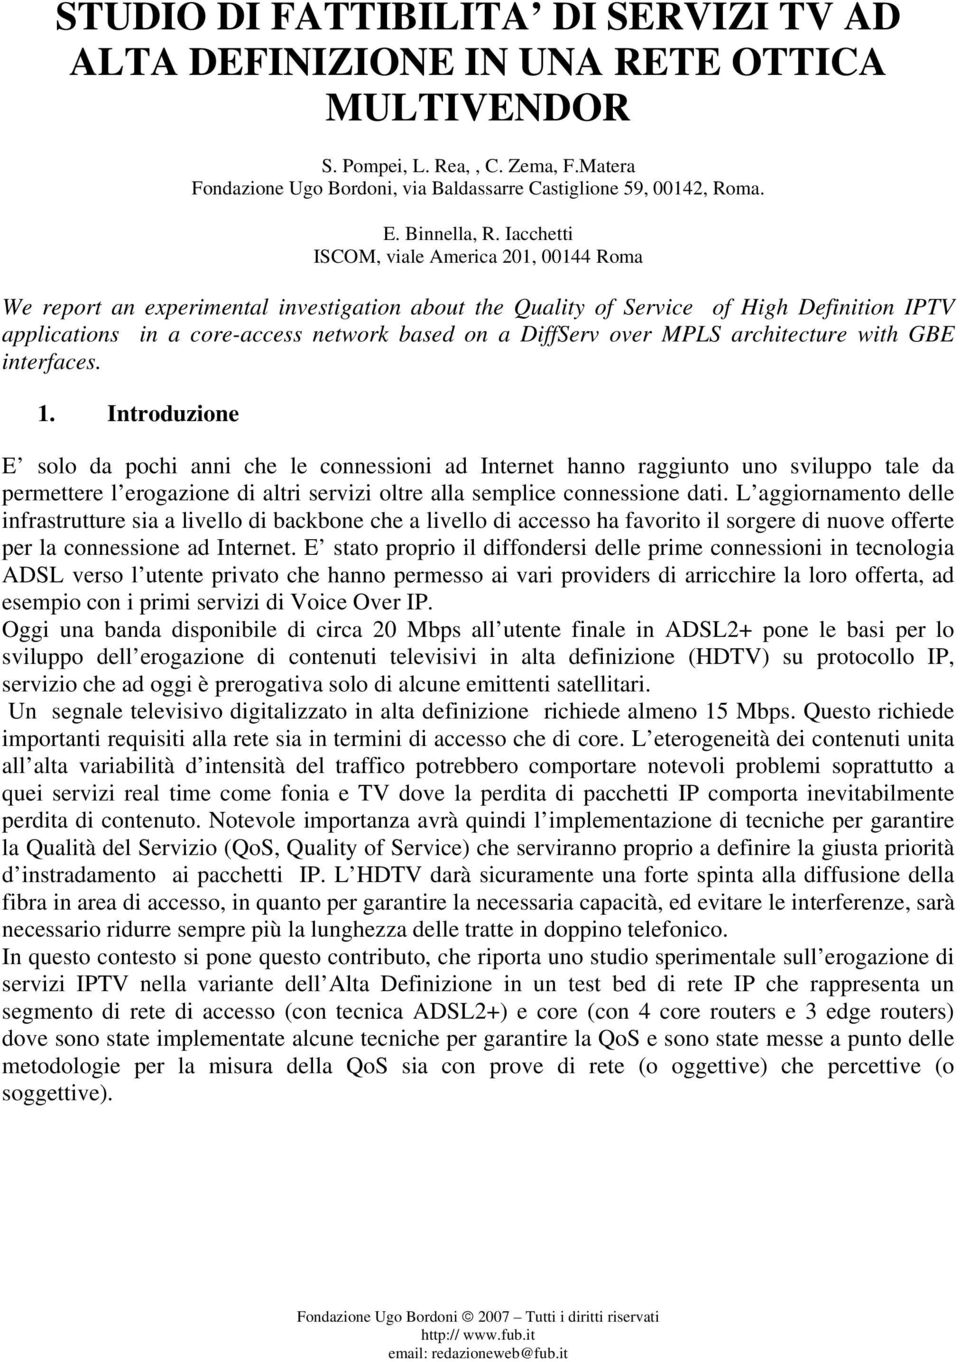 Iacchetti ISCOM, viale America 201, 00144 Roma We report an experimental investigation about the Quality of Service of High Definition IPTV applications in a core-access network based on a DiffServ